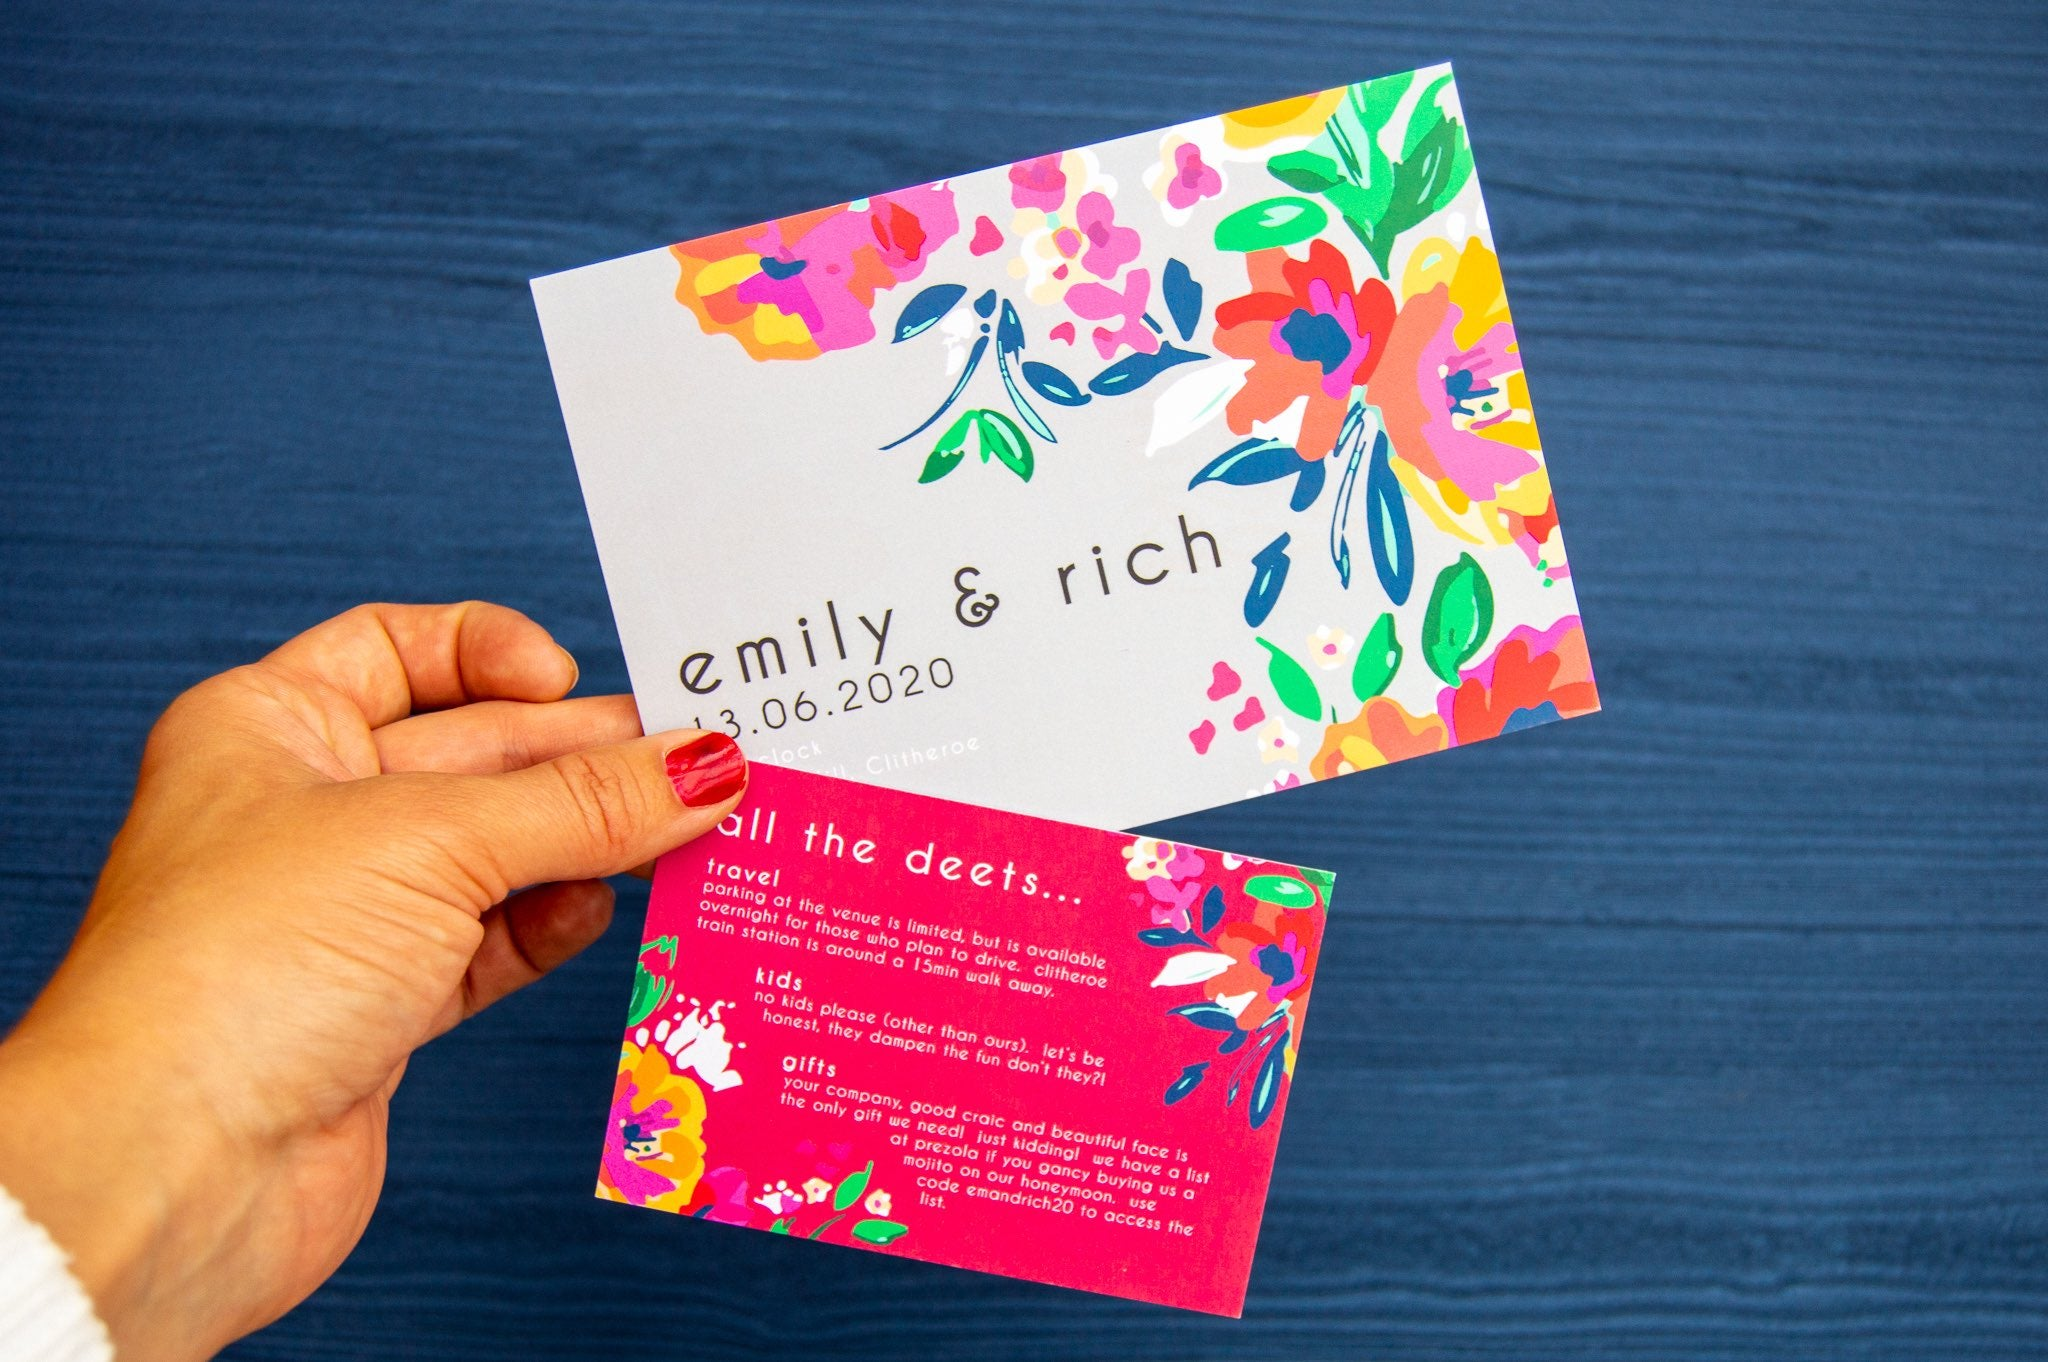 Grey wedding invite and red details card with floral pattern held by a hand over a navy background.